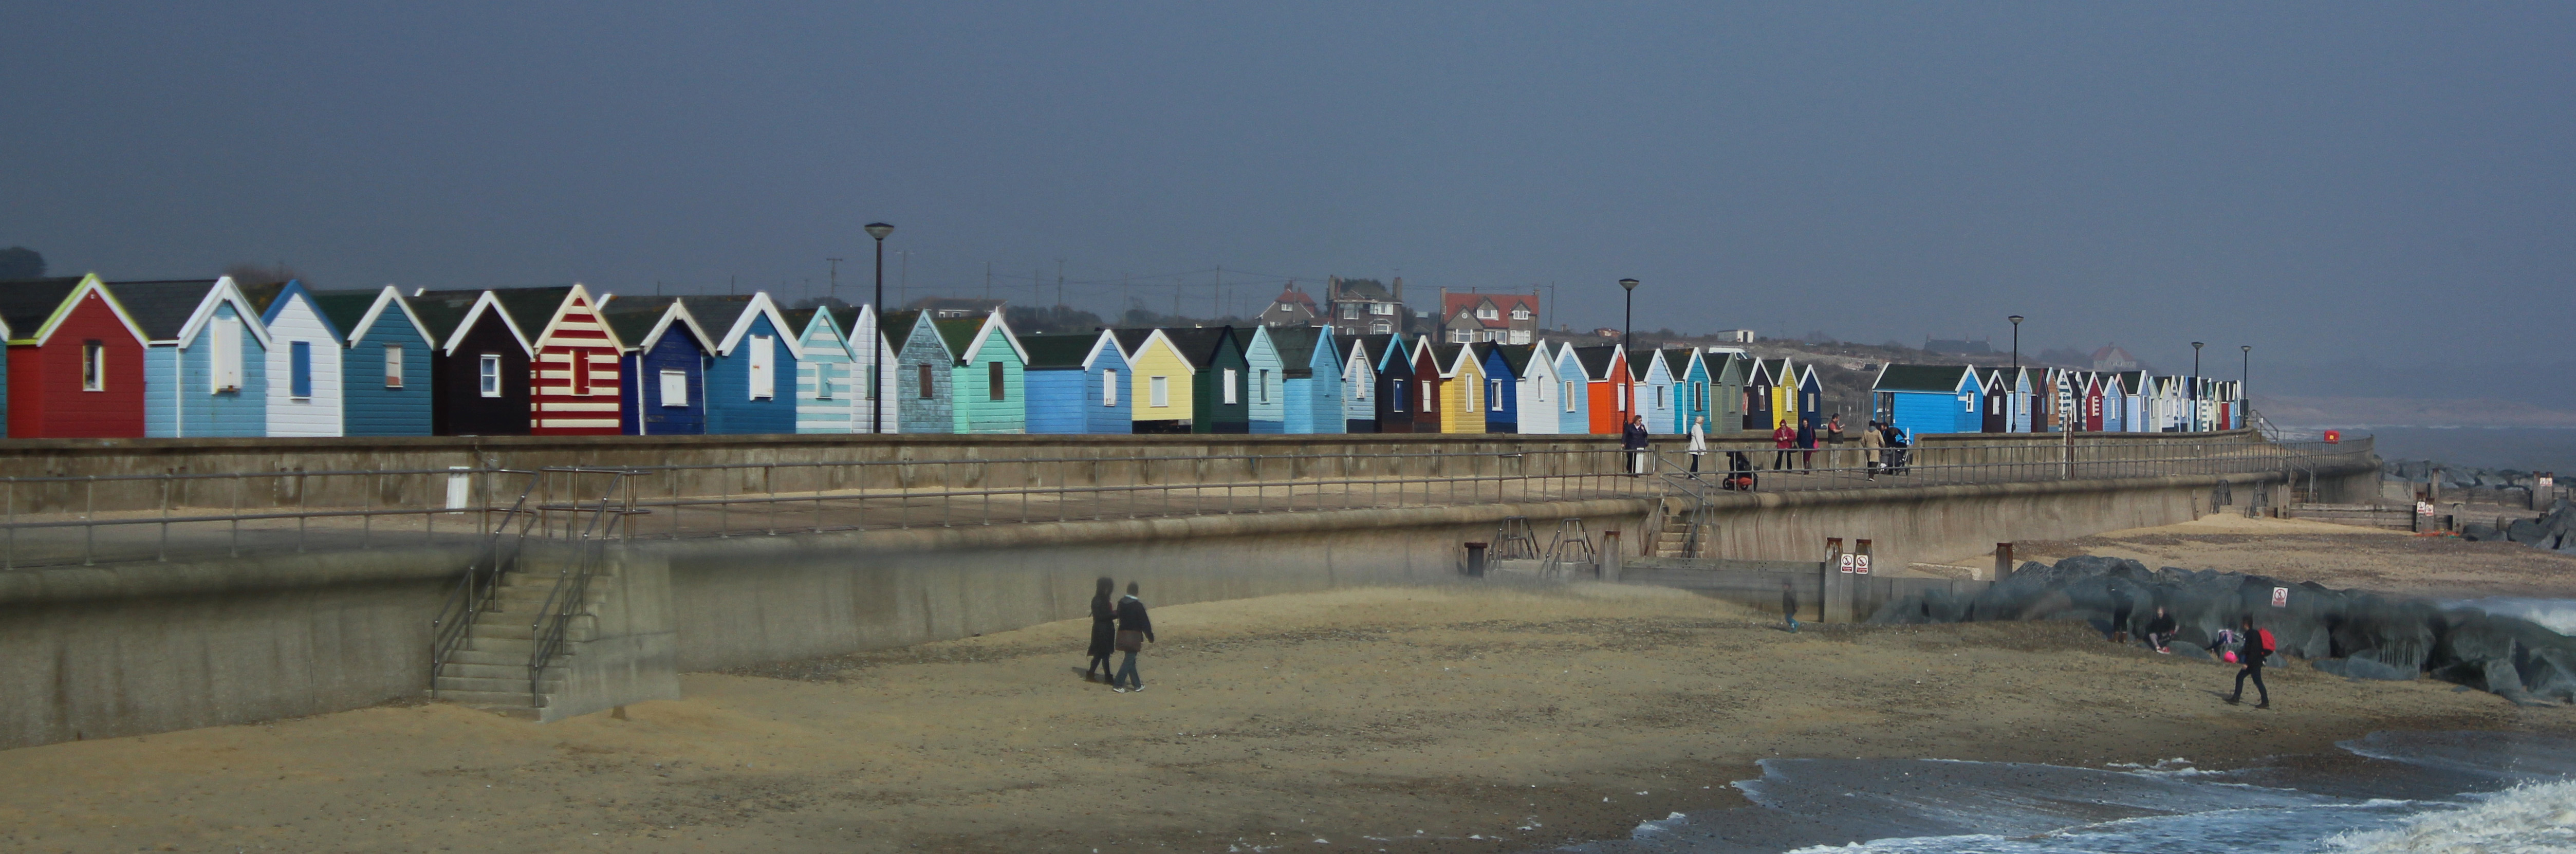 BY THE SEASIDE BY THE SEA by Sue Avey..jpg